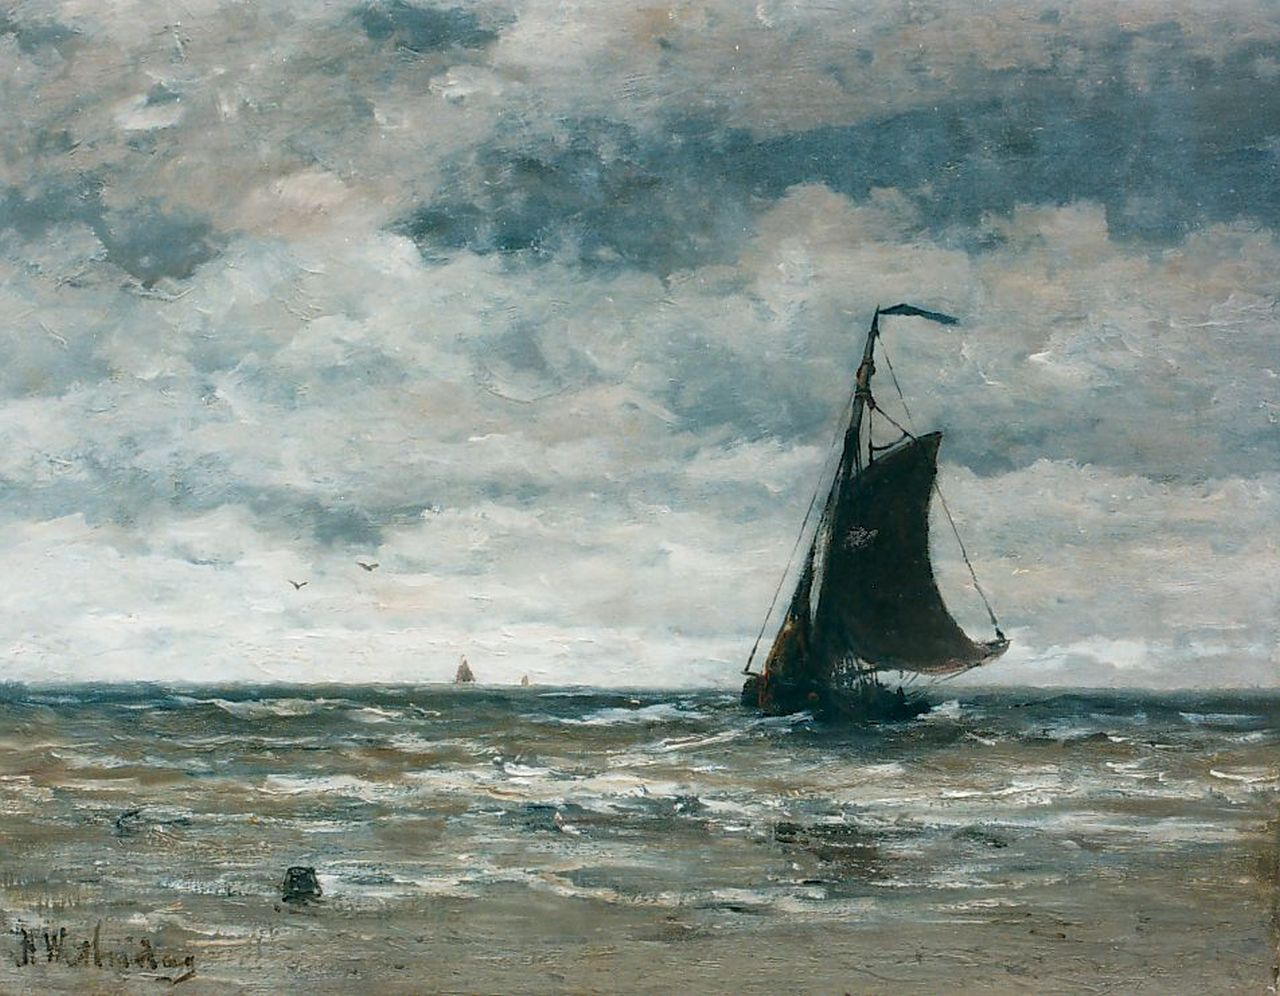 Mesdag H.W.  | Hendrik Willem Mesdag, A 'Bomschuit' in the surf, oil on canvas 40.0 x 51.0 cm, signed l.l.